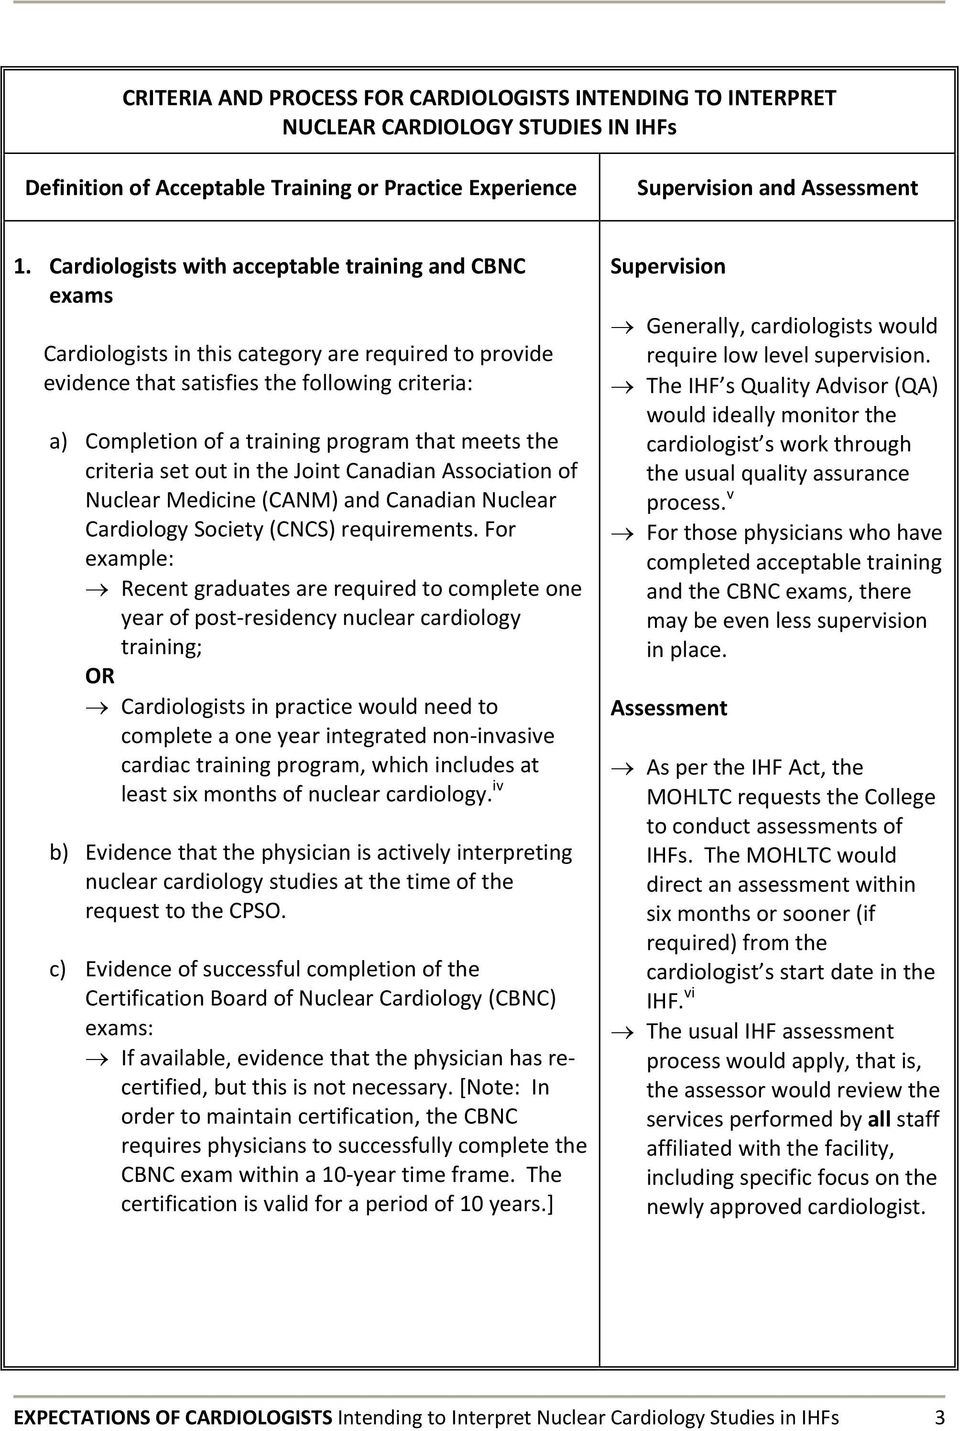 meets the criteria set out in the Joint Canadian Association of Nuclear  Medicine (CANM)